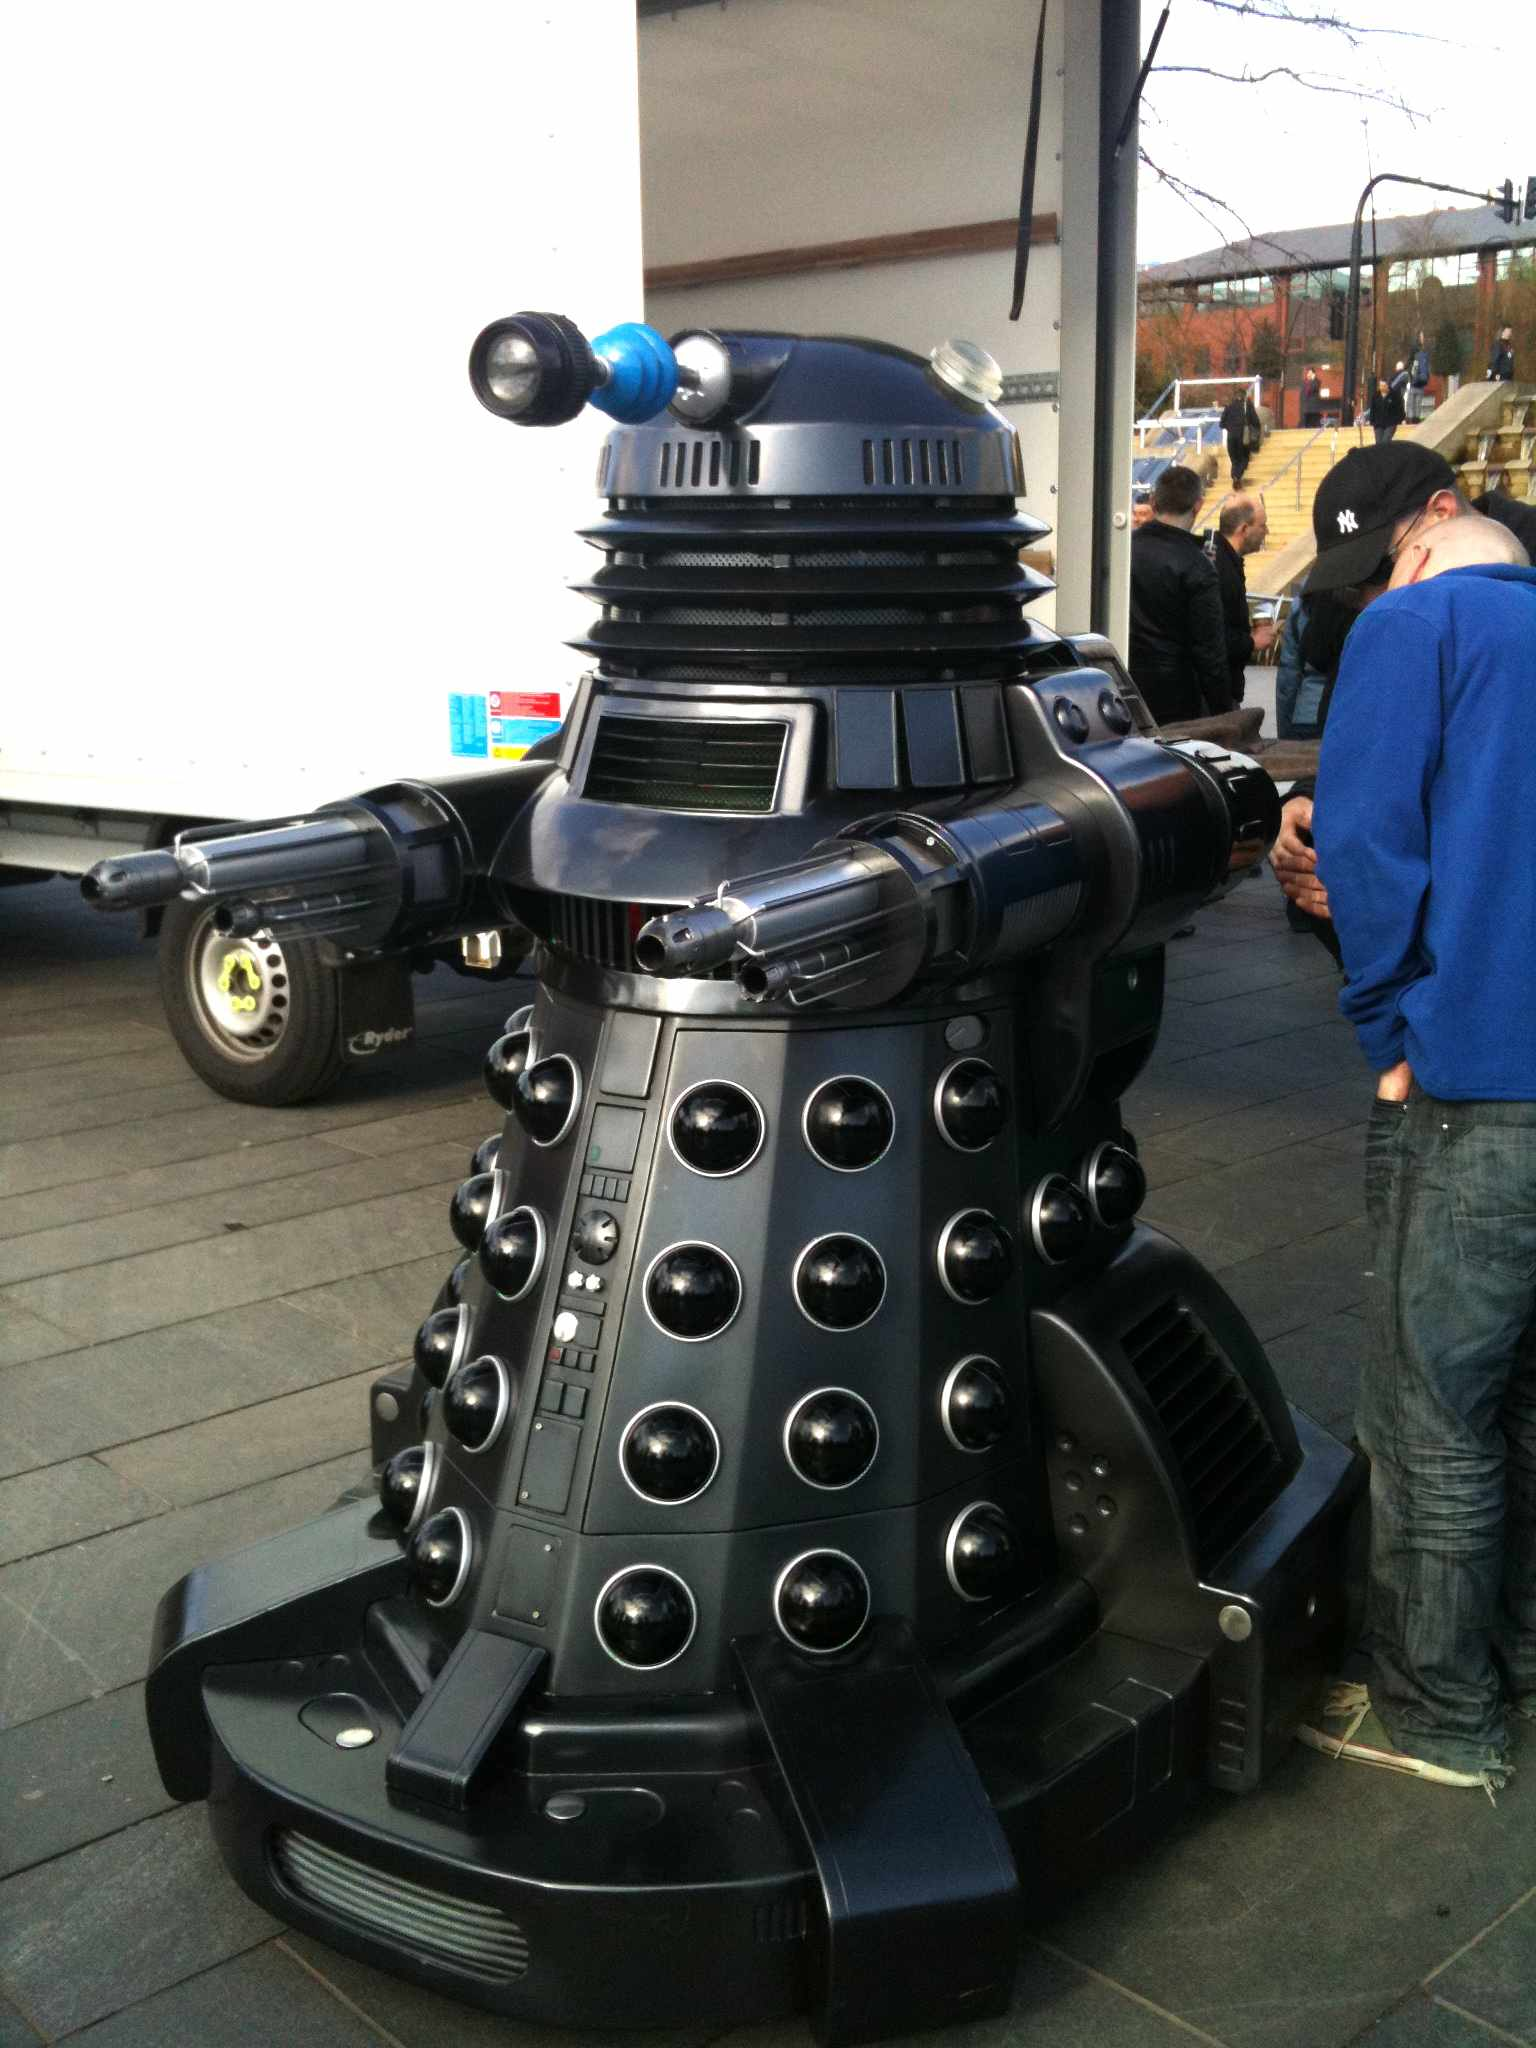 An all-black Dalek with machine guns for both arms